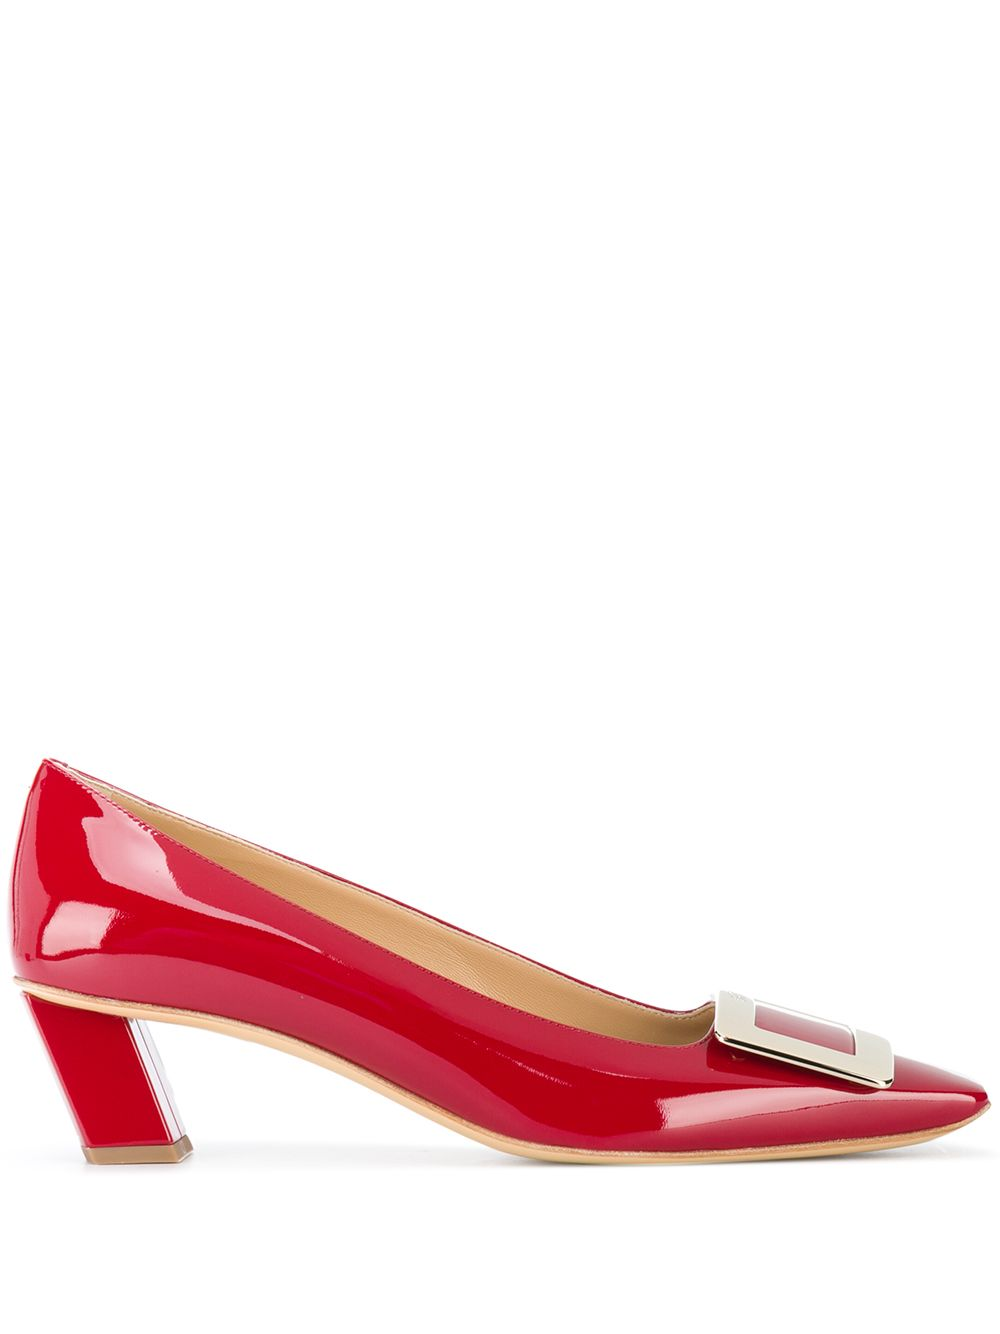 Belle Vivier Patent Leather Pumps